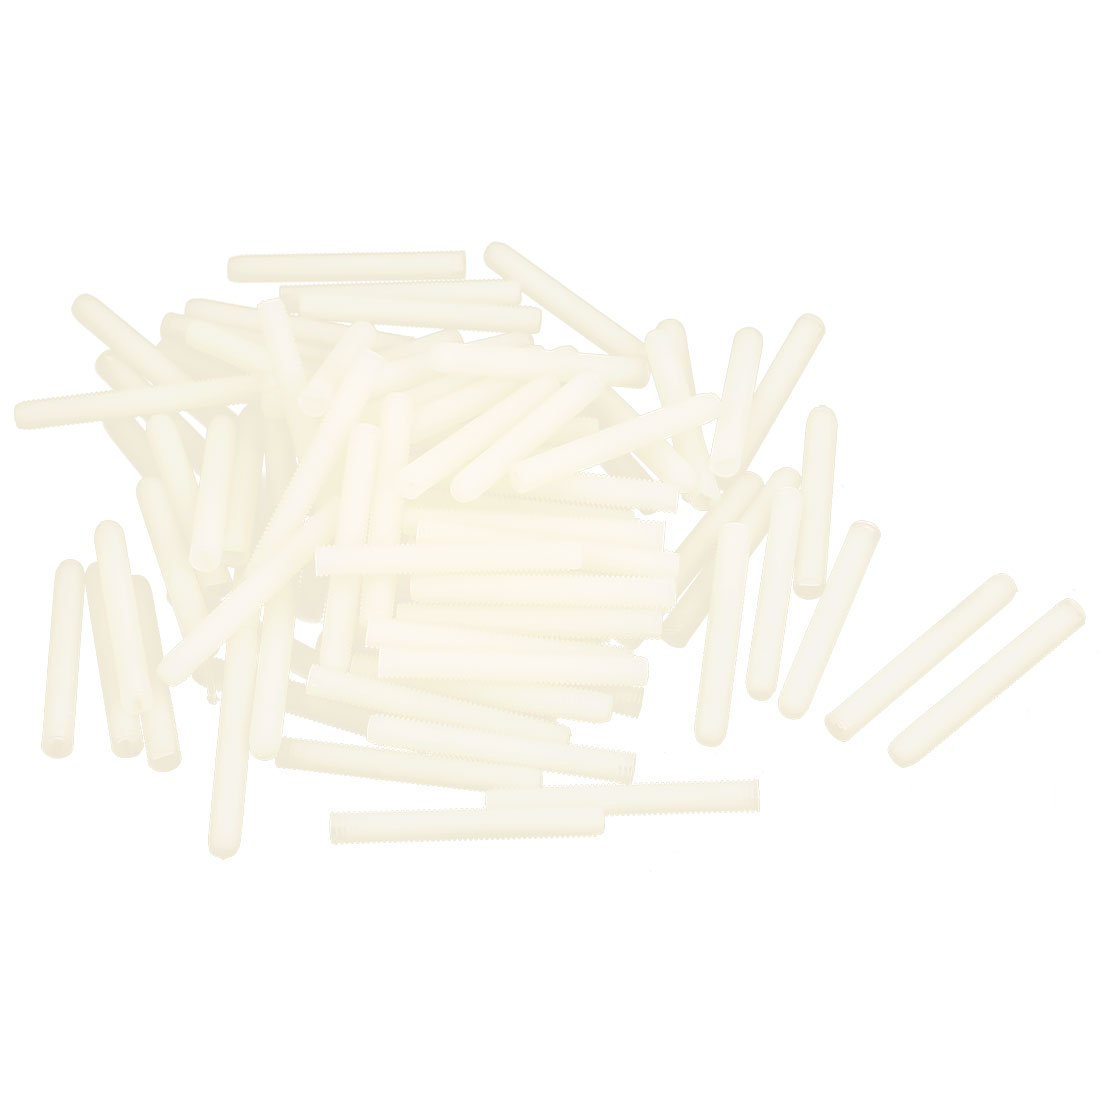 M5x40mm 0.8mm Pitch Nylon Slotted Grub Set Screw Threaded Rod Stud Beige 100Pcs